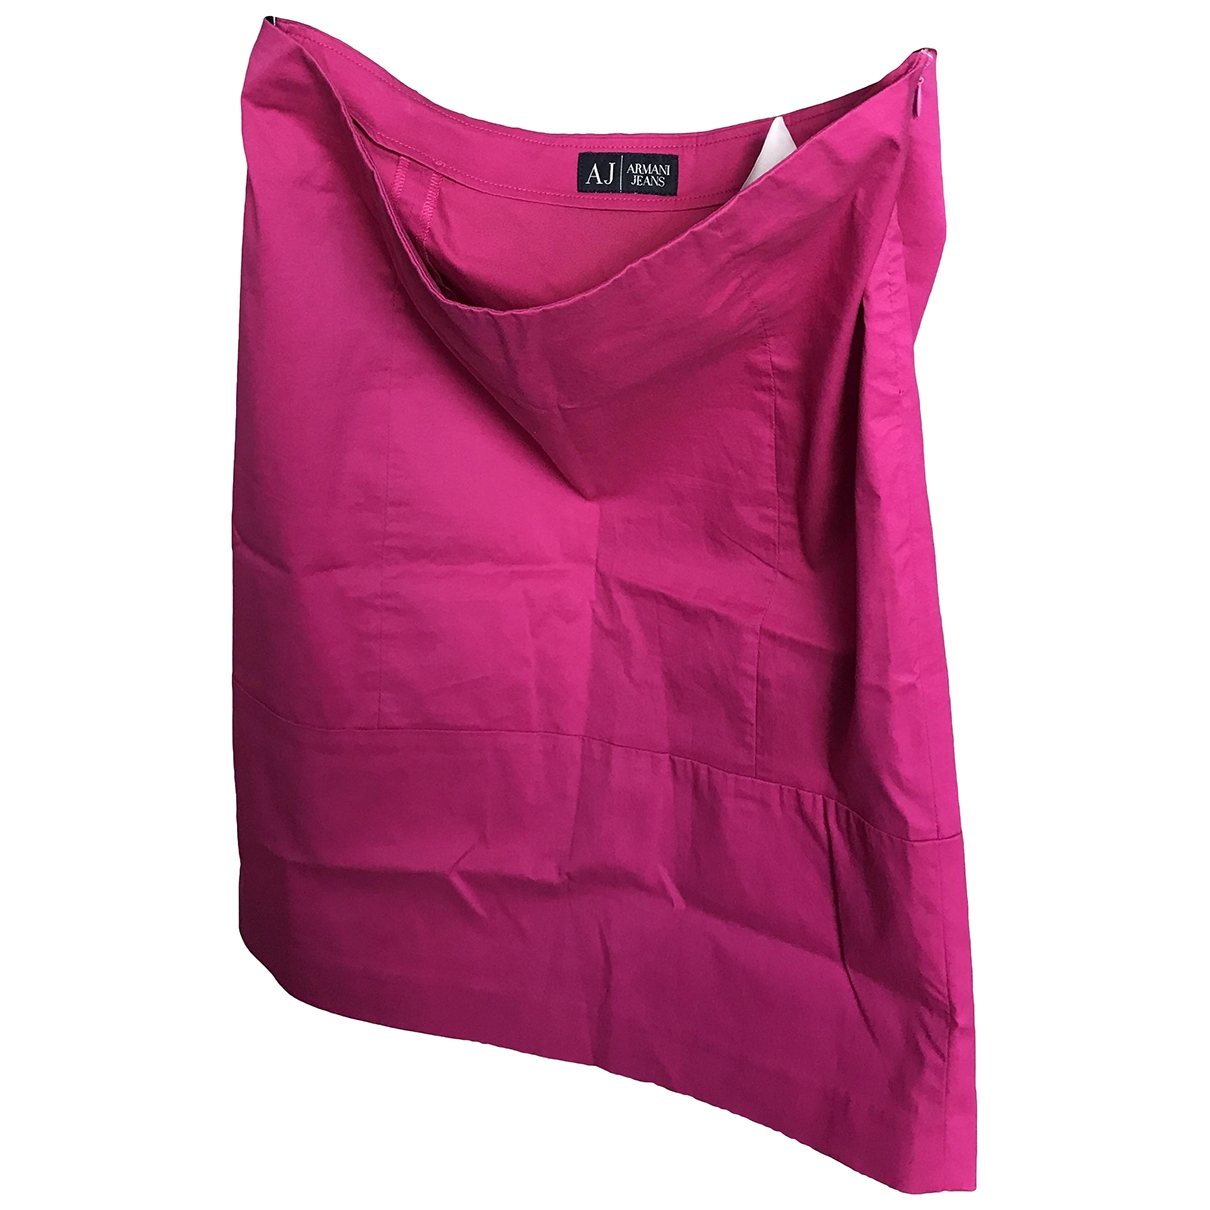 Armani Jeans \N Pink Cotton skirt for Women 6 US